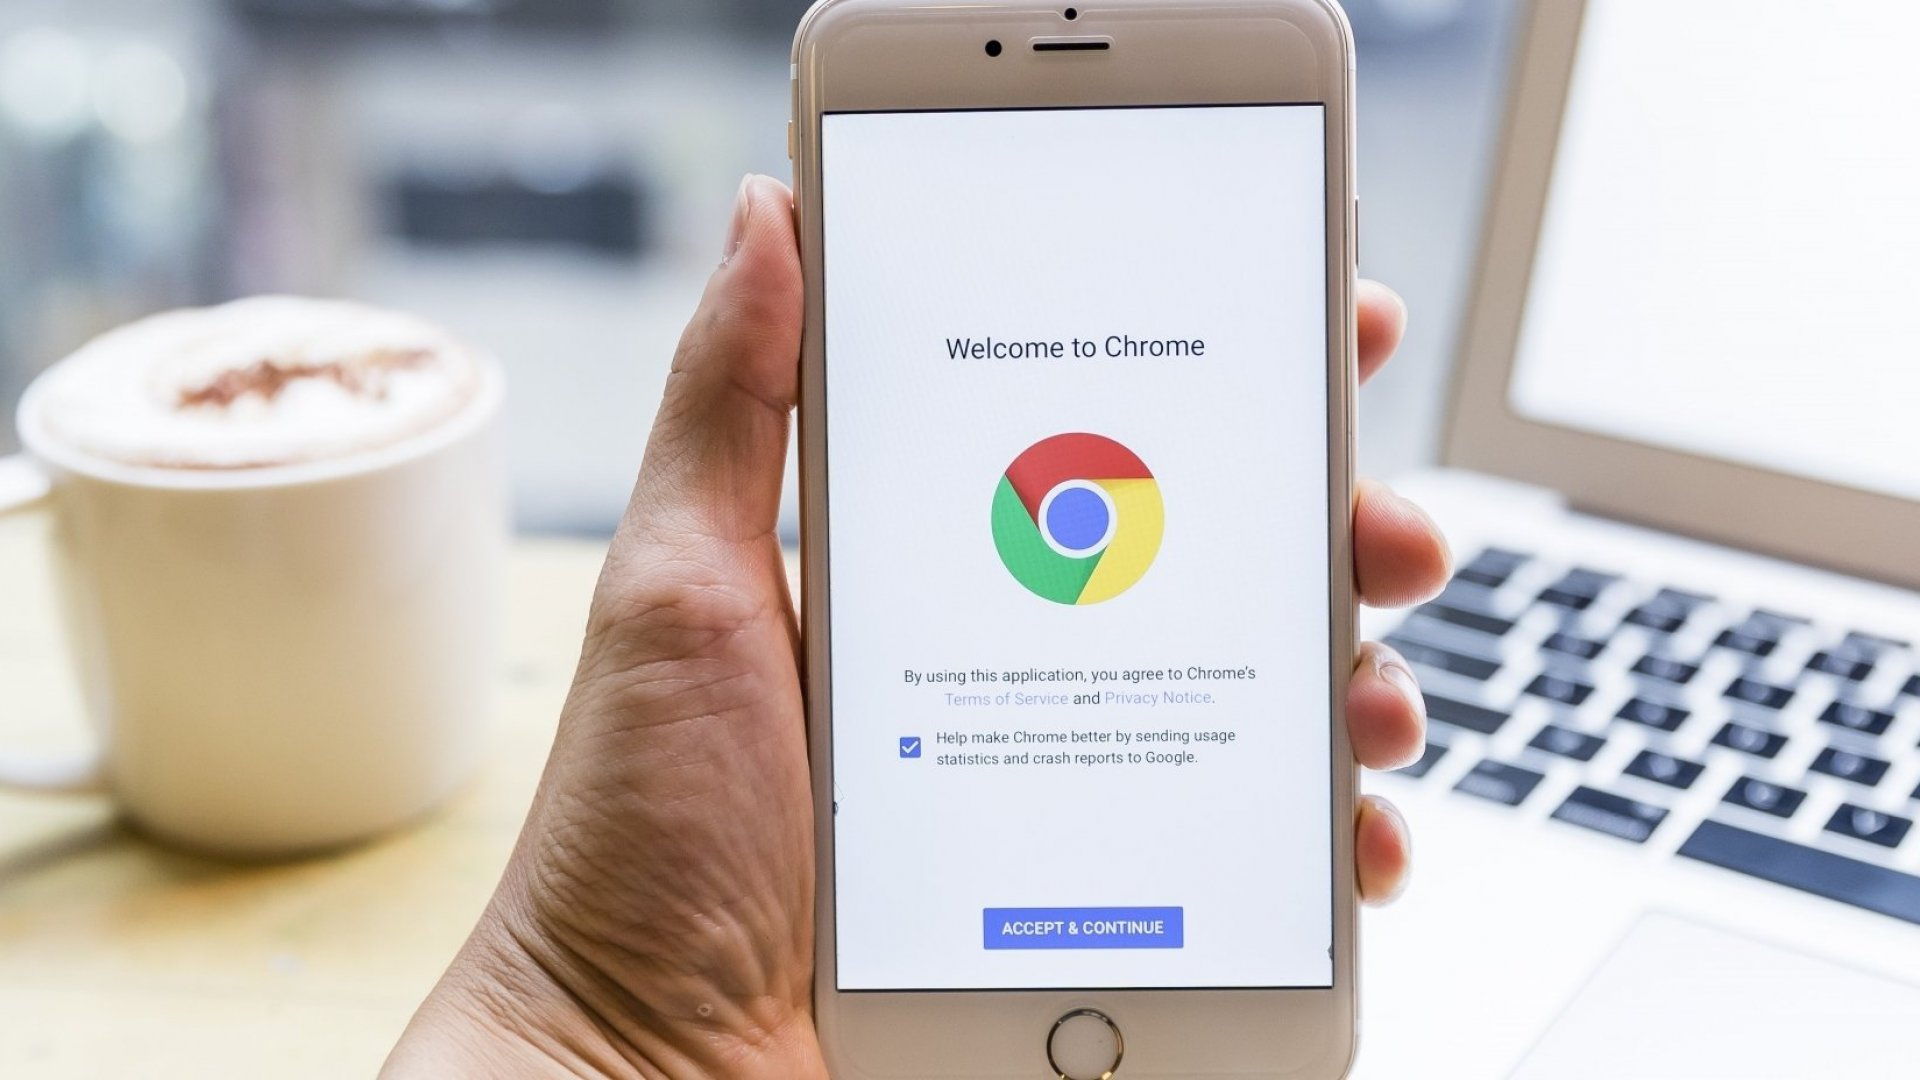 Google Chrome Security Problem Allows Spying on Millions of Users